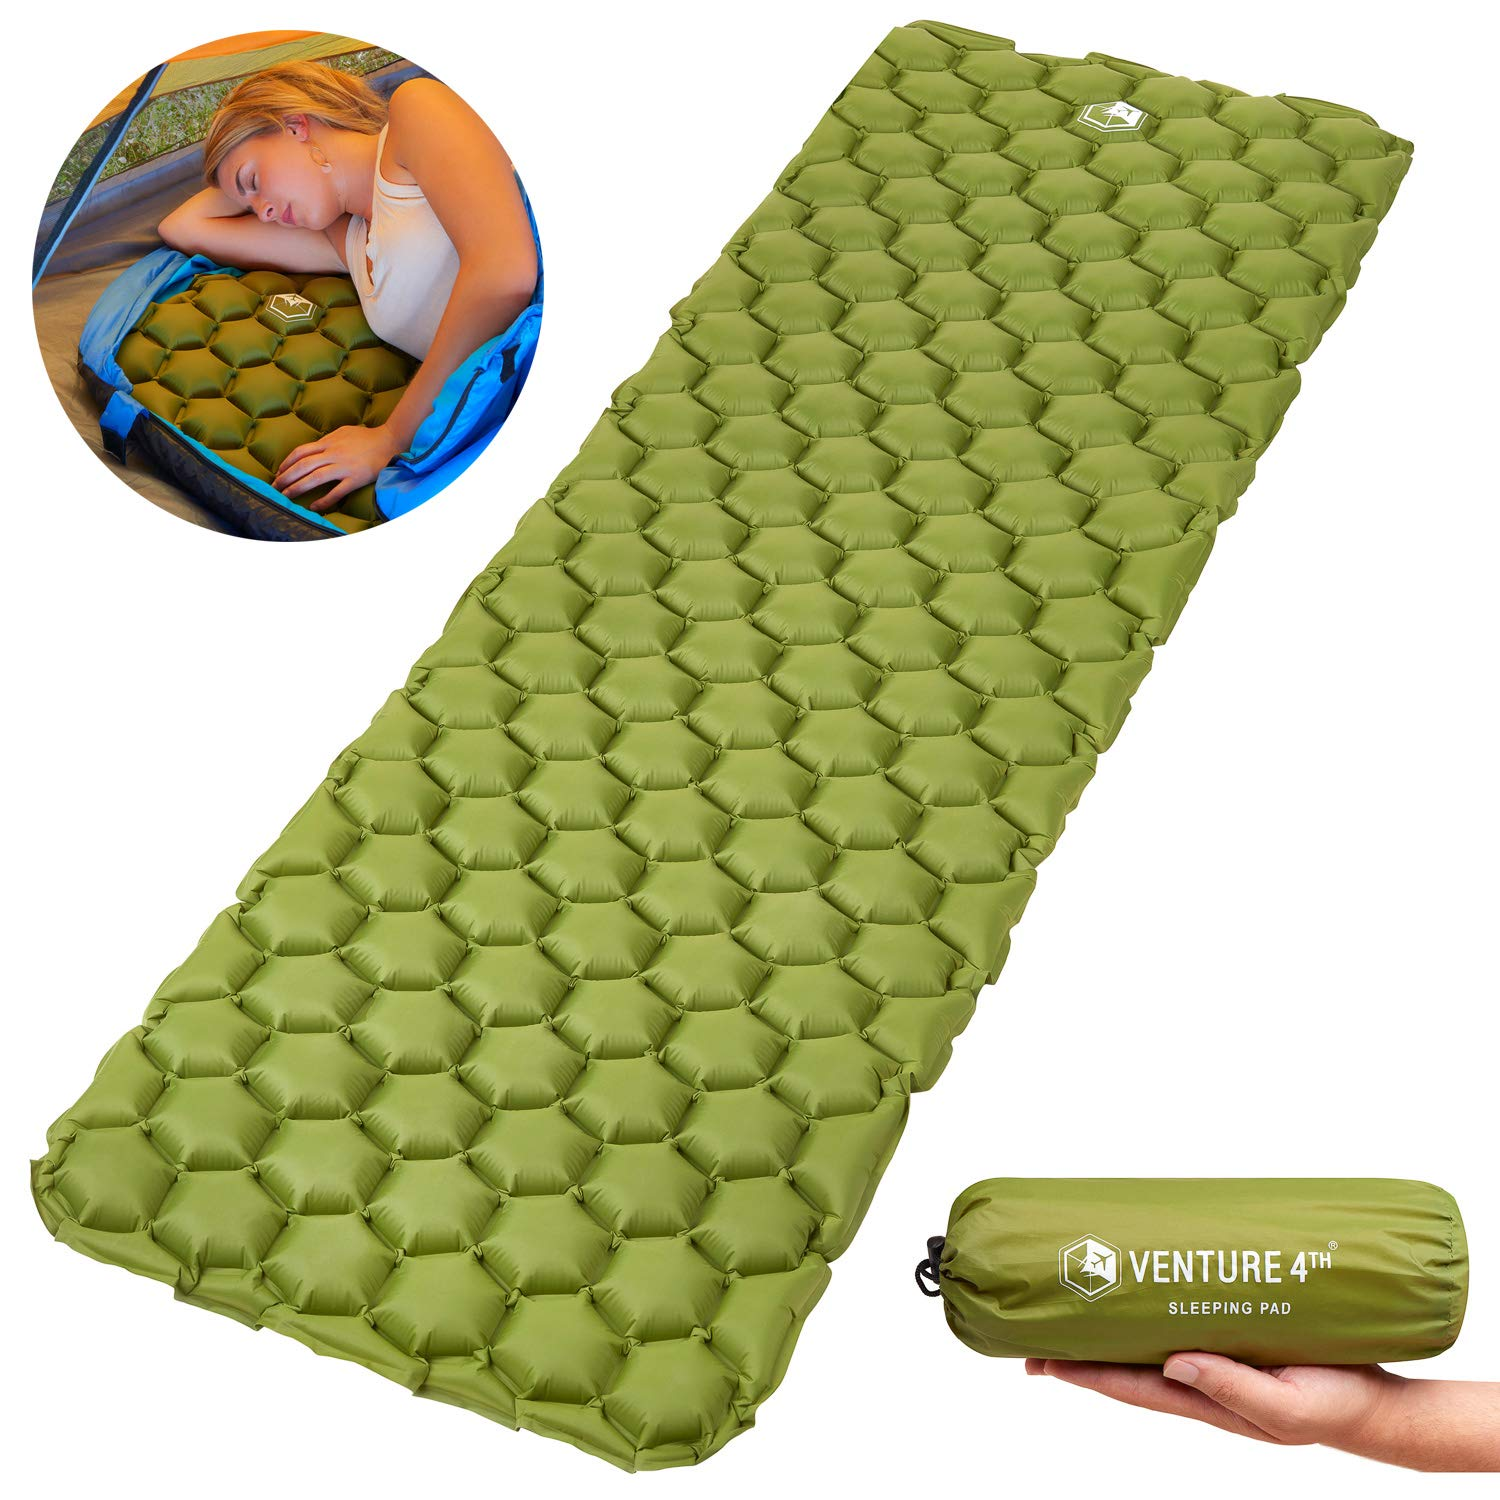 VENTURE 4TH Ultralight Air Sleeping Pad - Lightweight, Compact, Durable - Air Cell Technology for Added Stability and Comfort While Backpacking, Camping, and Traveling (Dark Green) by VENTURE 4TH